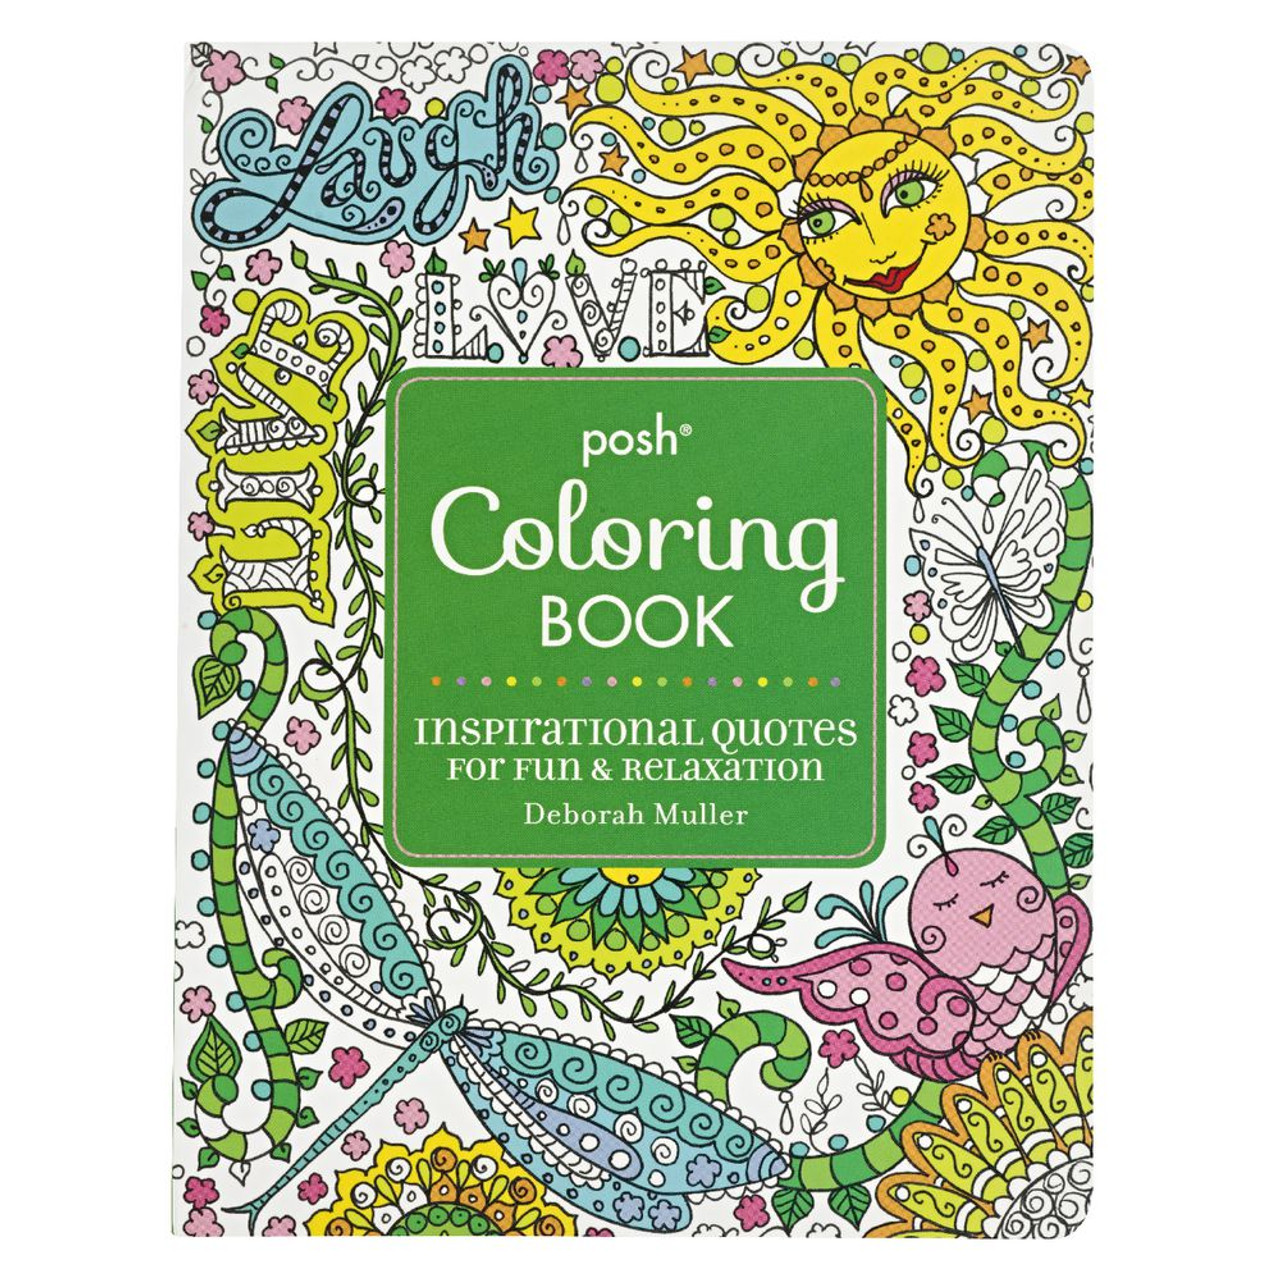 - Posh Coloring Book: Inspirational Quotes For Fun & Relaxation